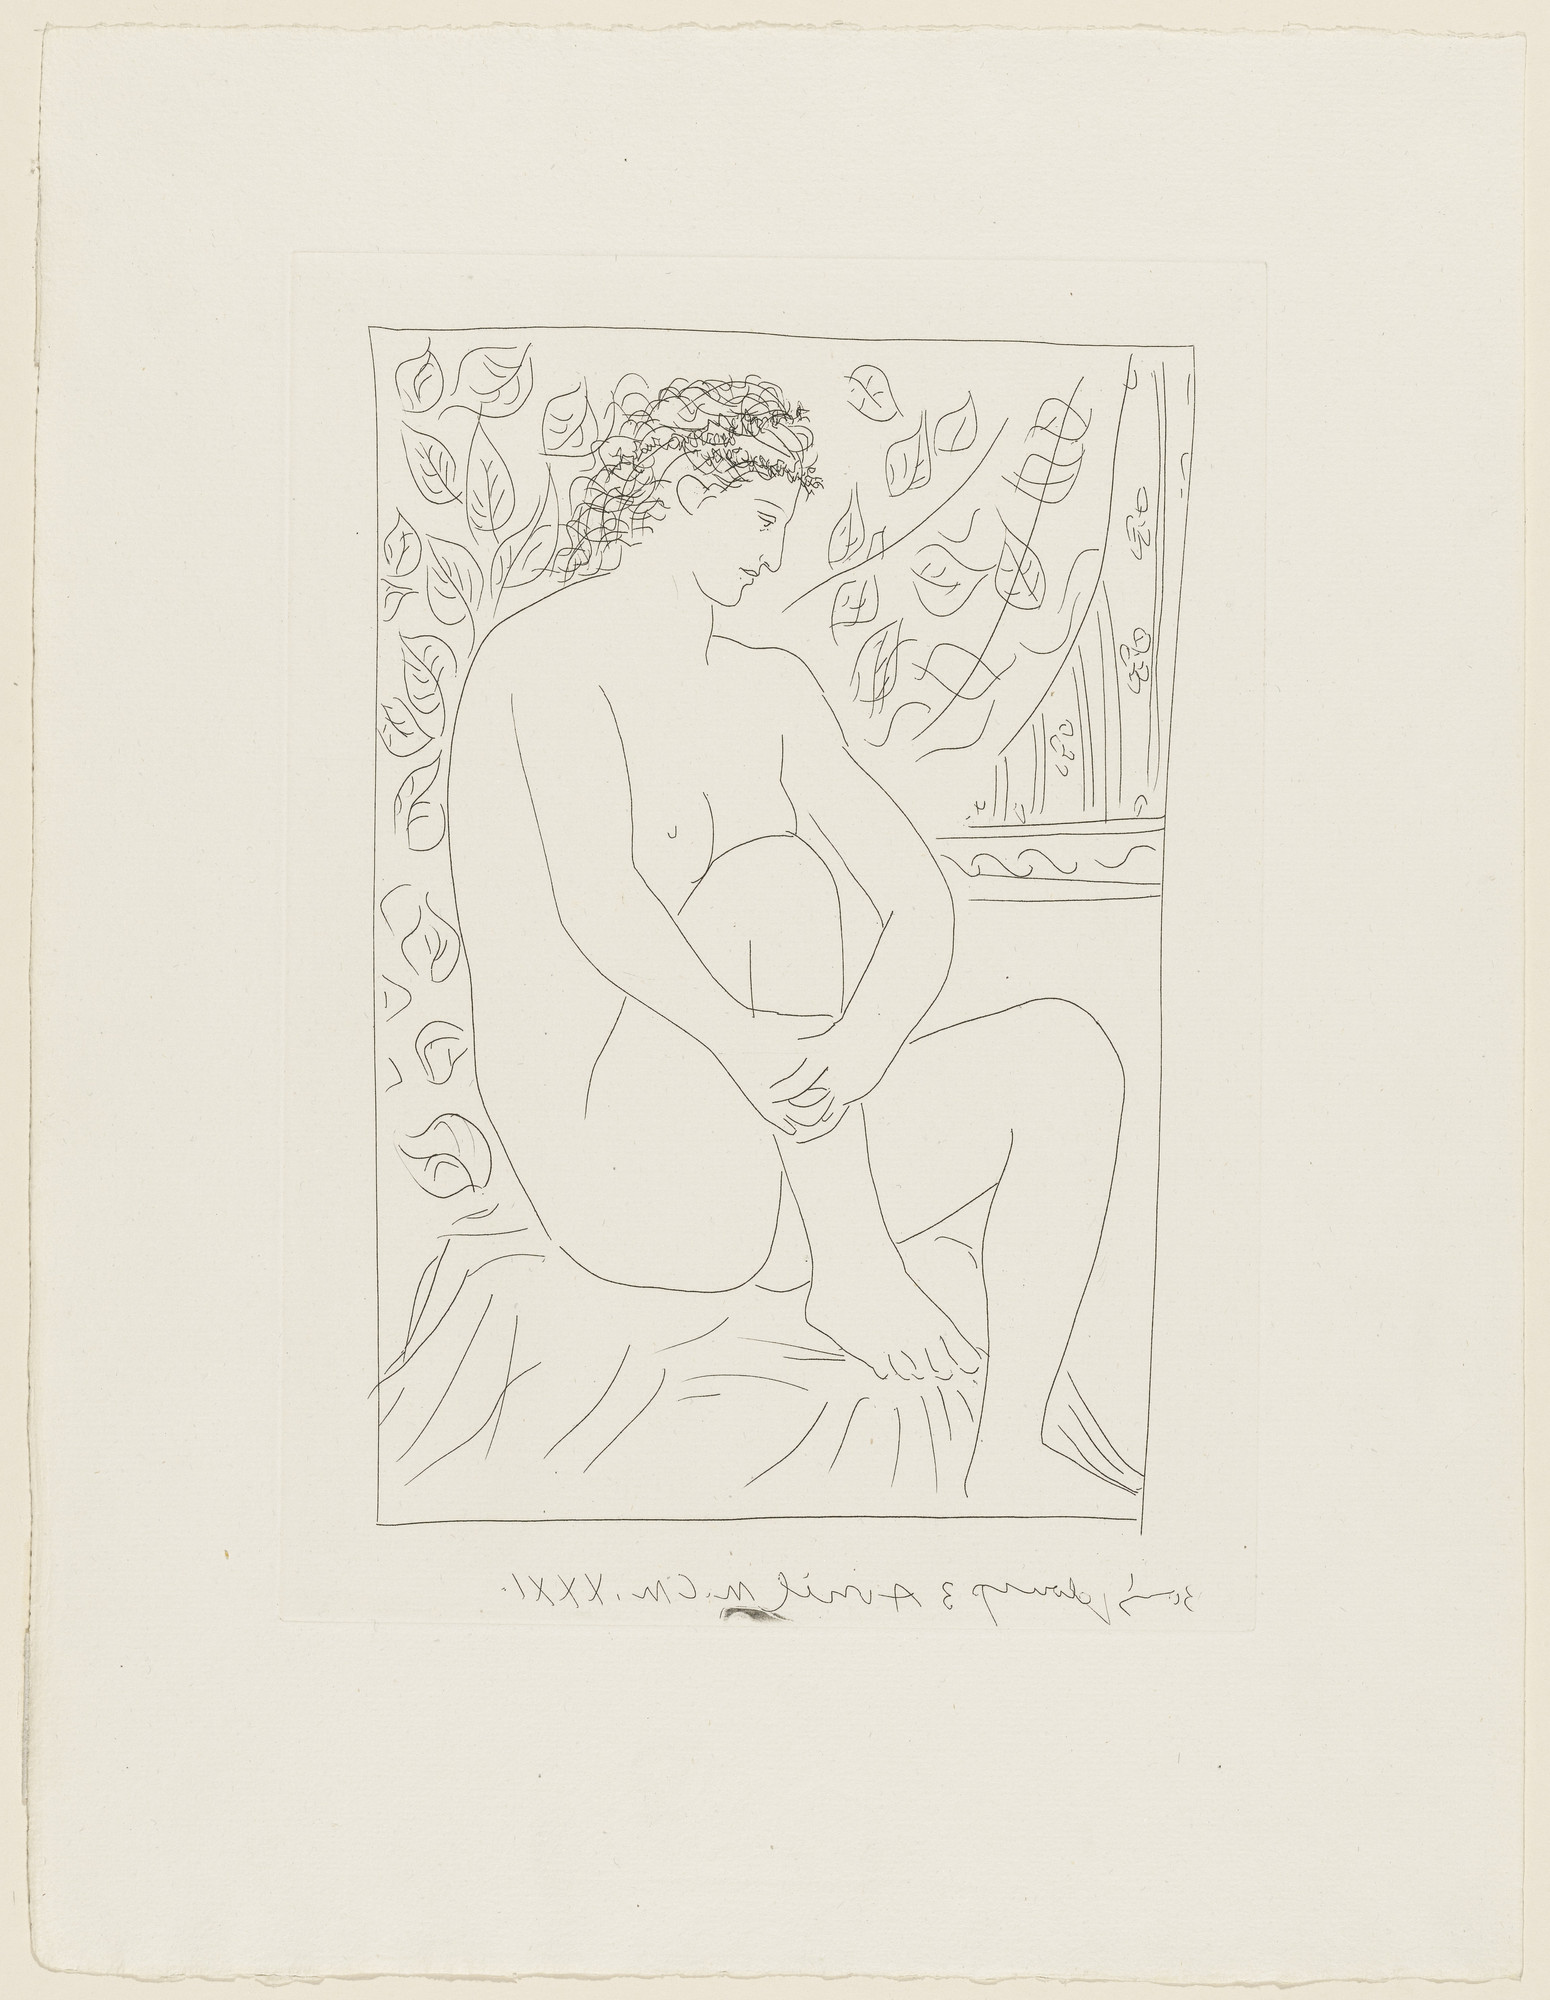 Pablo Picasso. Nude Woman Seated Before a Curtain (Femme nue assise devant un rideau) from the Vollard Suite (Suite Vollard). 1931, published 1939